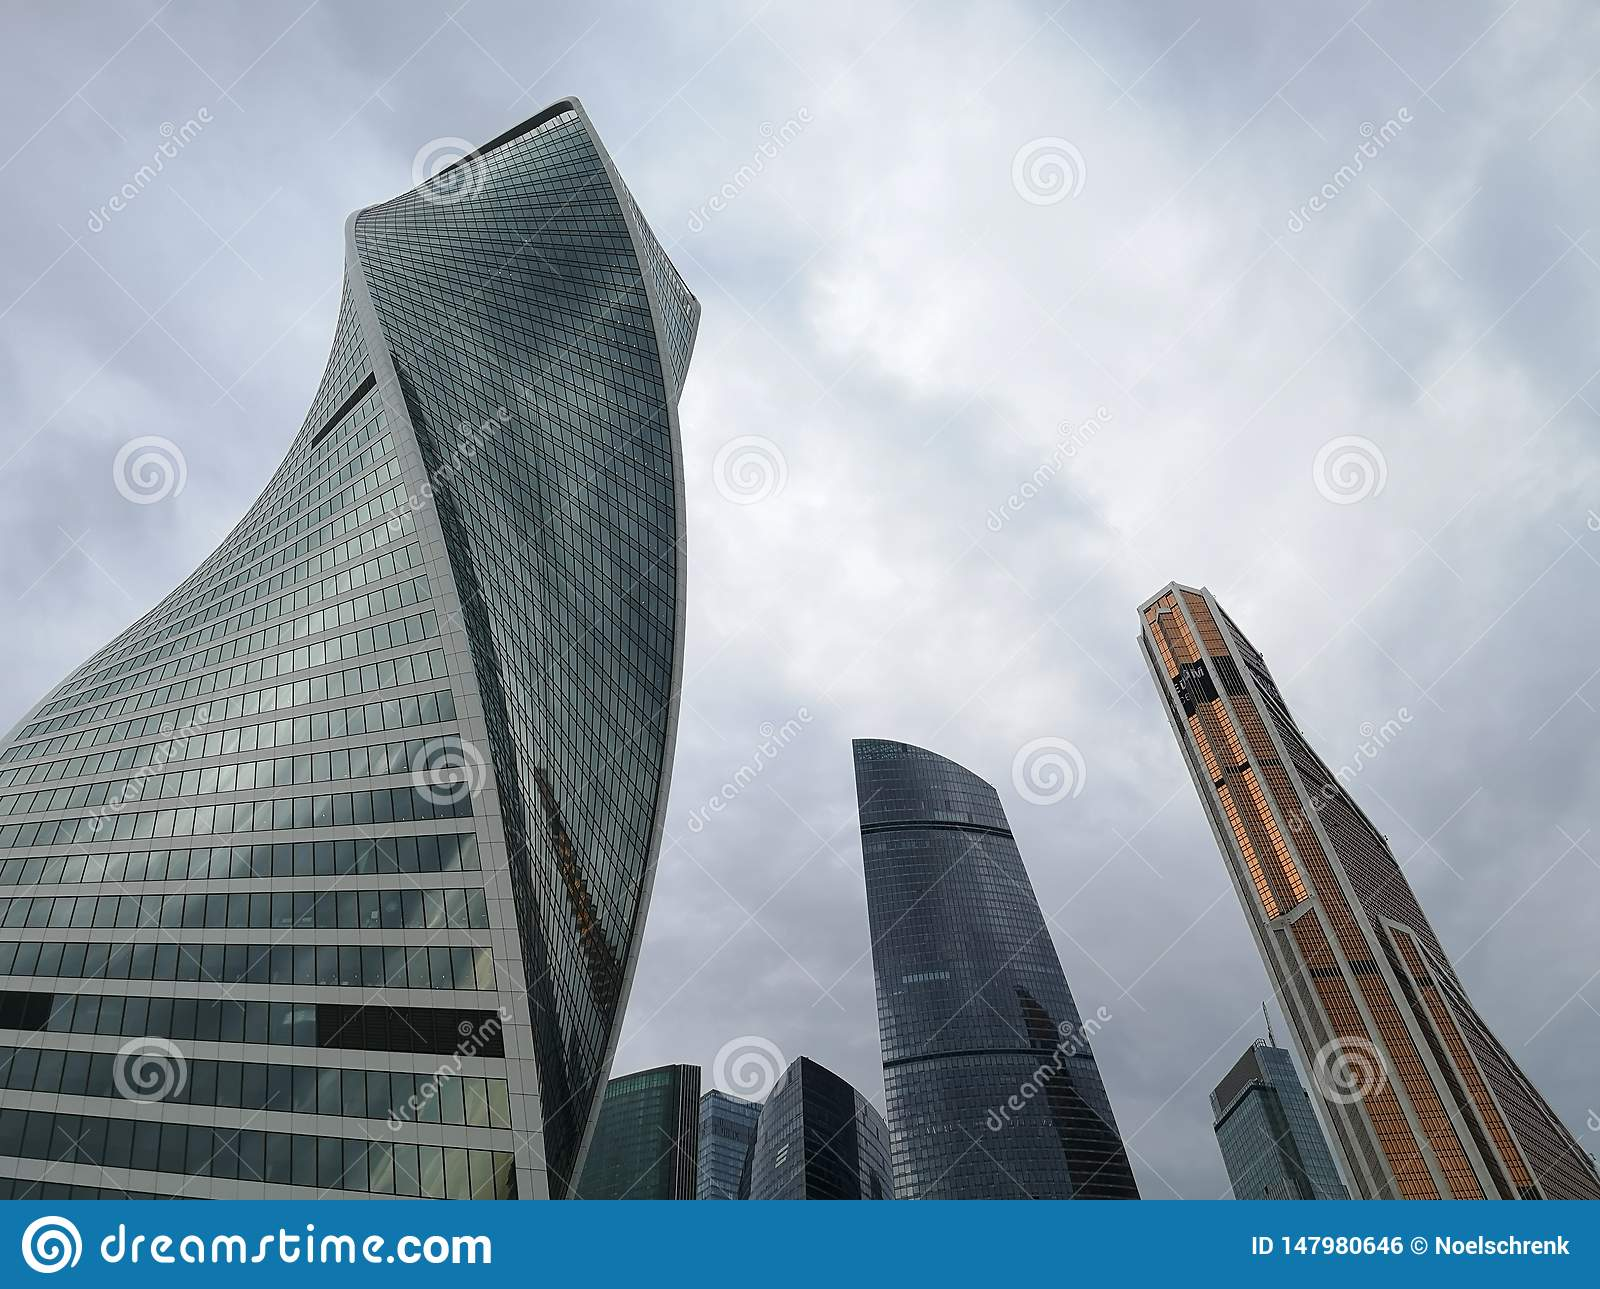 Moscow City Skyscrapers. Explore Russia.